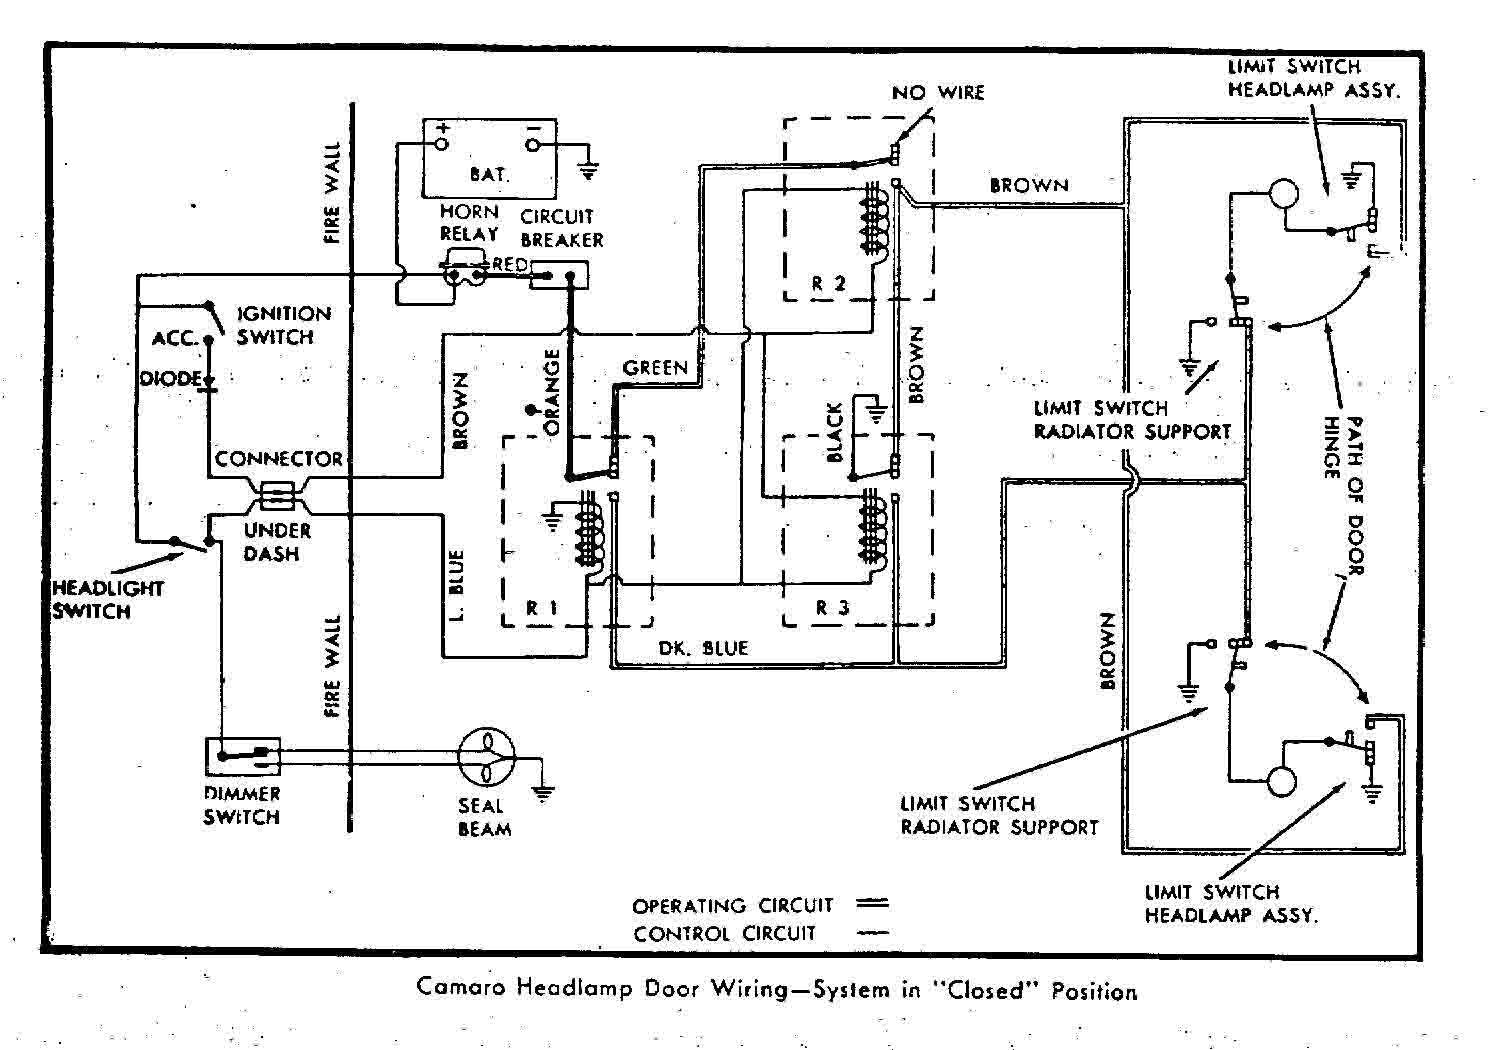 hight resolution of 1968 camaro horn wiring diagram wiring diagram toolbox 1968 camaro horn diagram